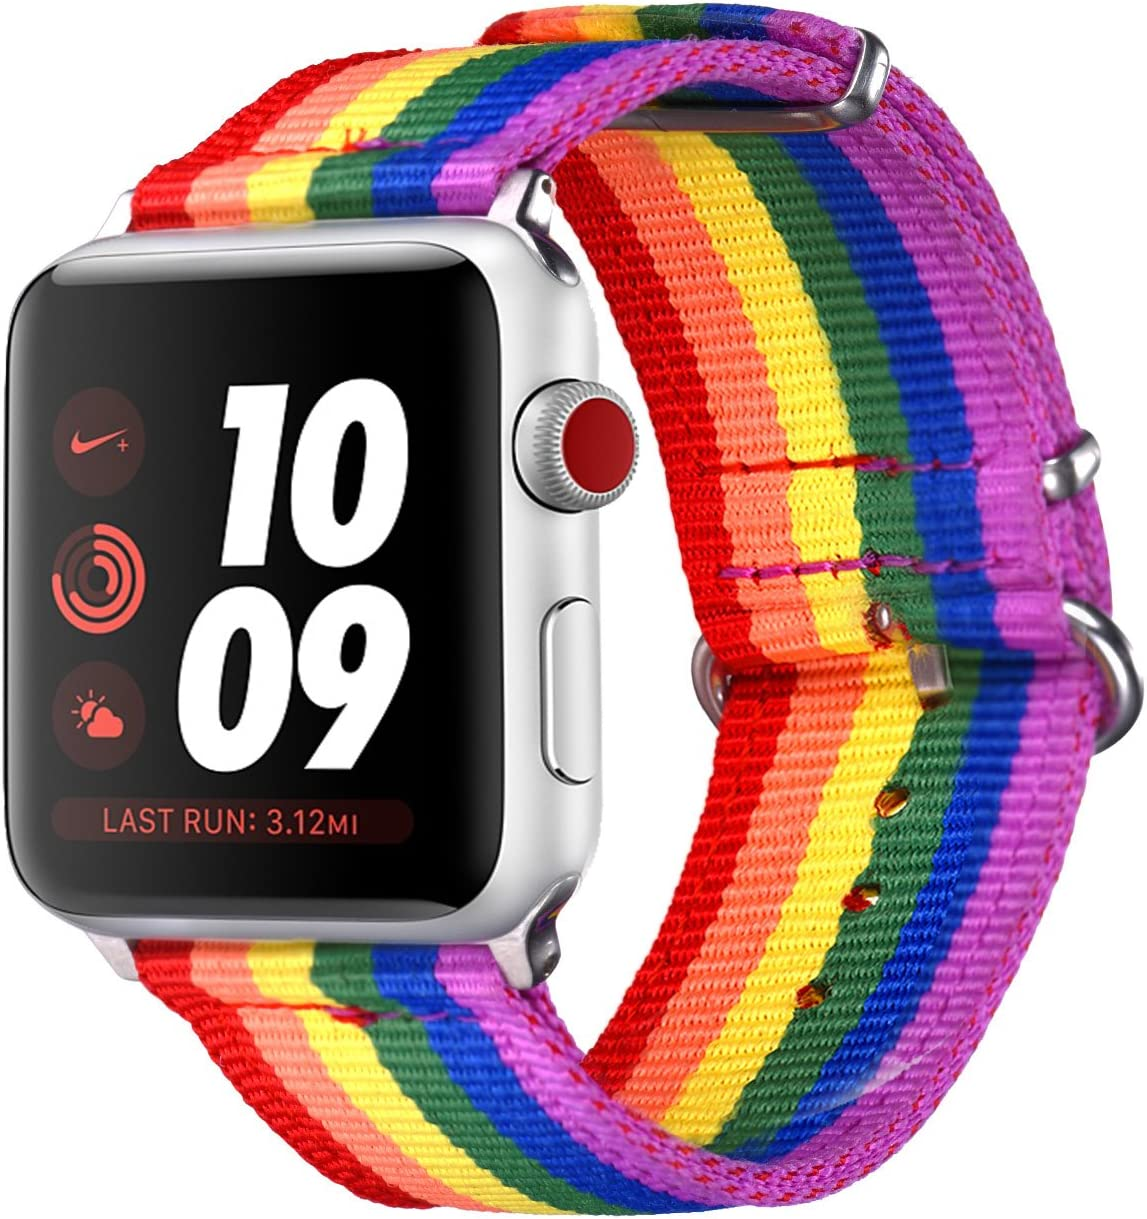 Bandmax Compatible for Rainbow LGBT Apple Watch Bands 42MM 44MMN Nylon Fabric Cloth Sport Straps Women Men Gay Pride Replacement Wristband Accessories Upgrade Metal Buckle for iwatch Series 5/4/3/2/1